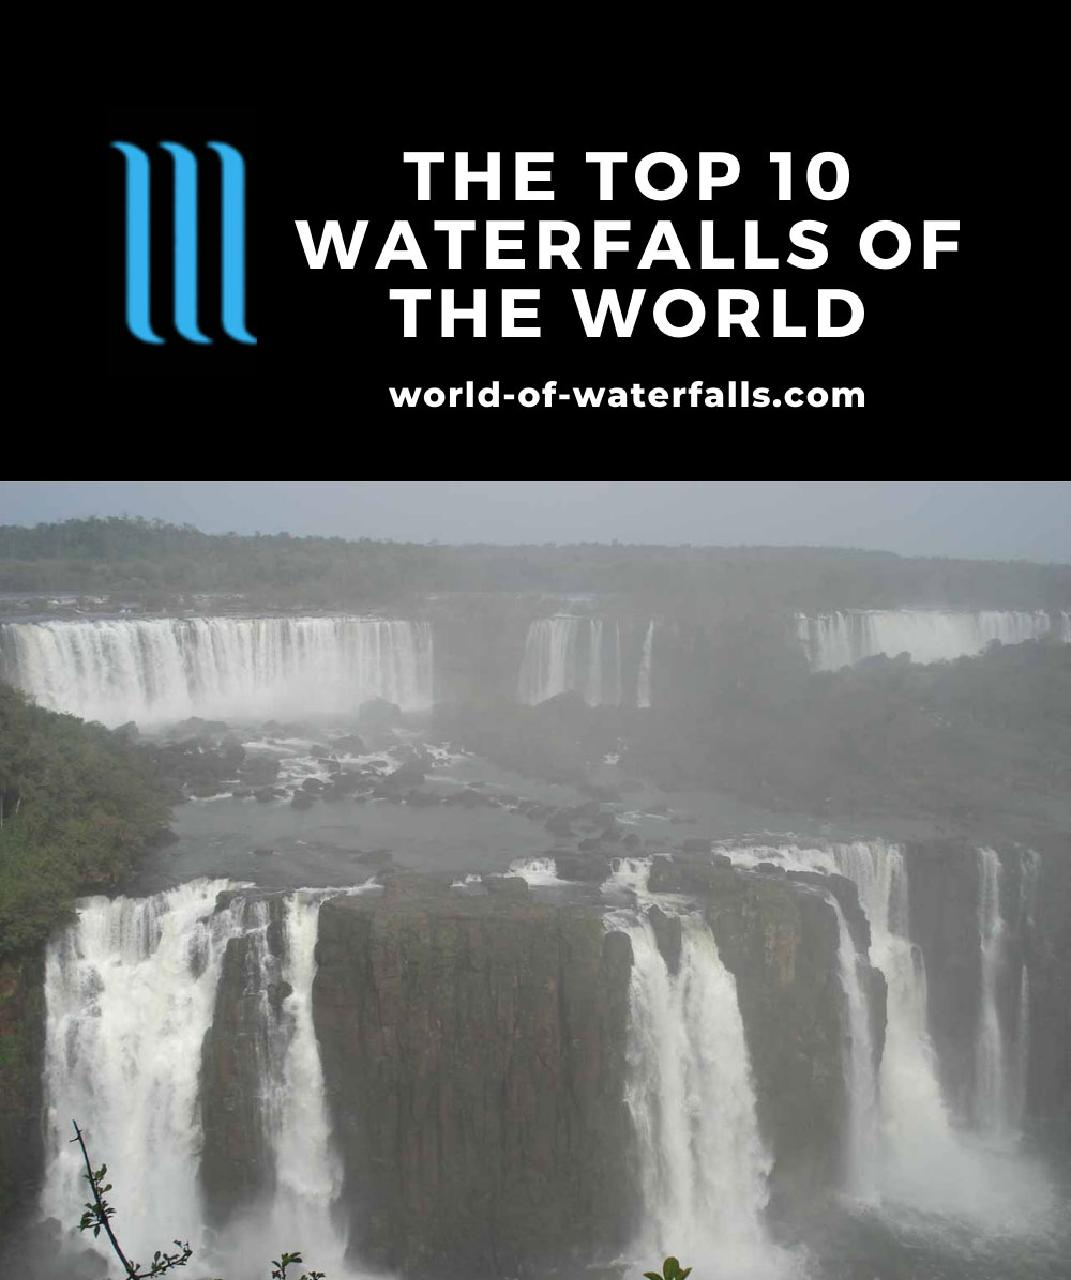 The Top 10 Waterfalls of the World